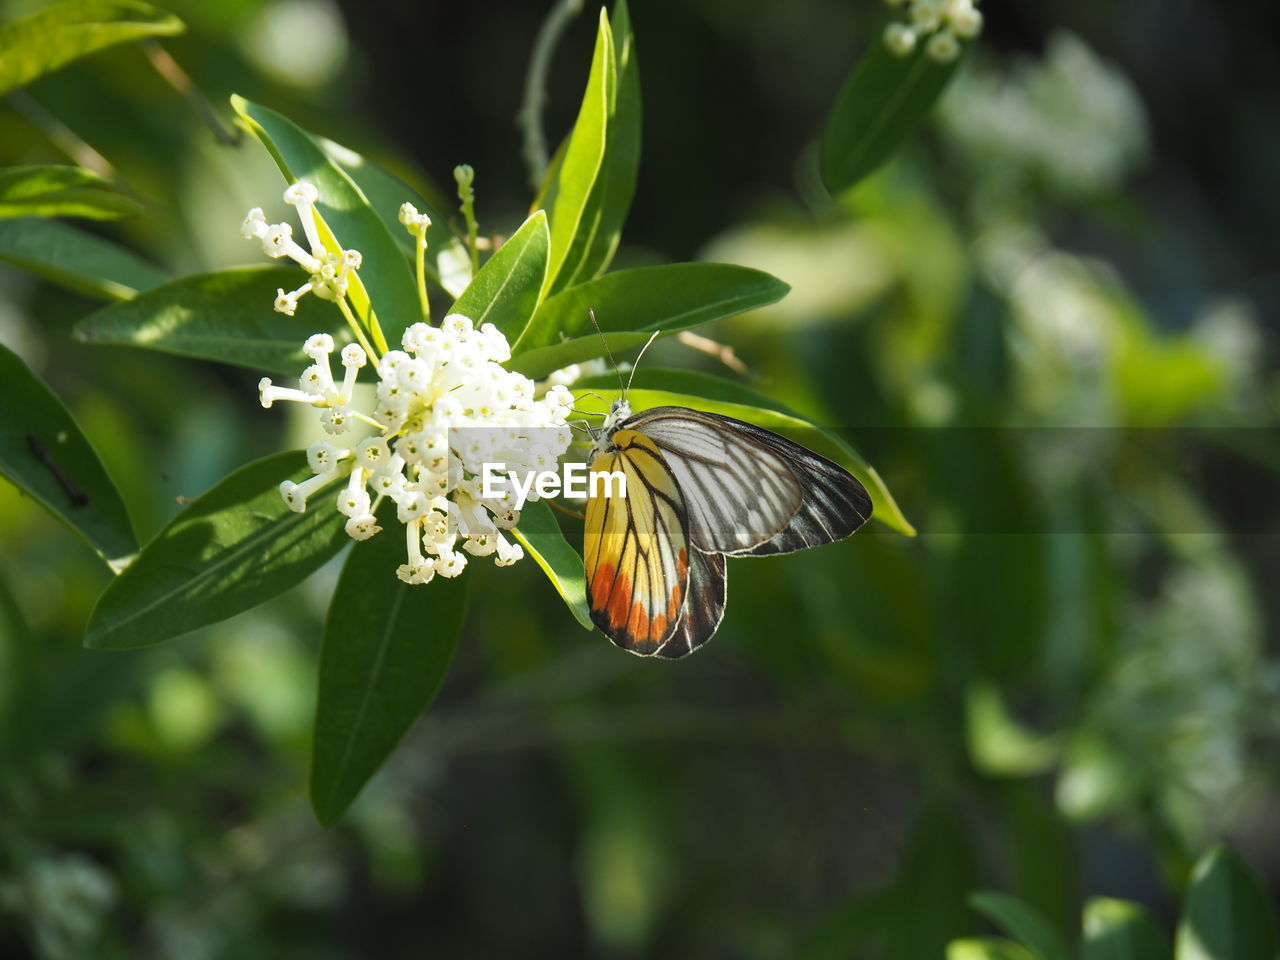 flower, flowering plant, plant, beauty in nature, fragility, vulnerability, freshness, growth, close-up, focus on foreground, flower head, petal, nature, green color, day, invertebrate, insect, inflorescence, no people, animal wildlife, outdoors, pollen, animal wing, butterfly - insect, pollination